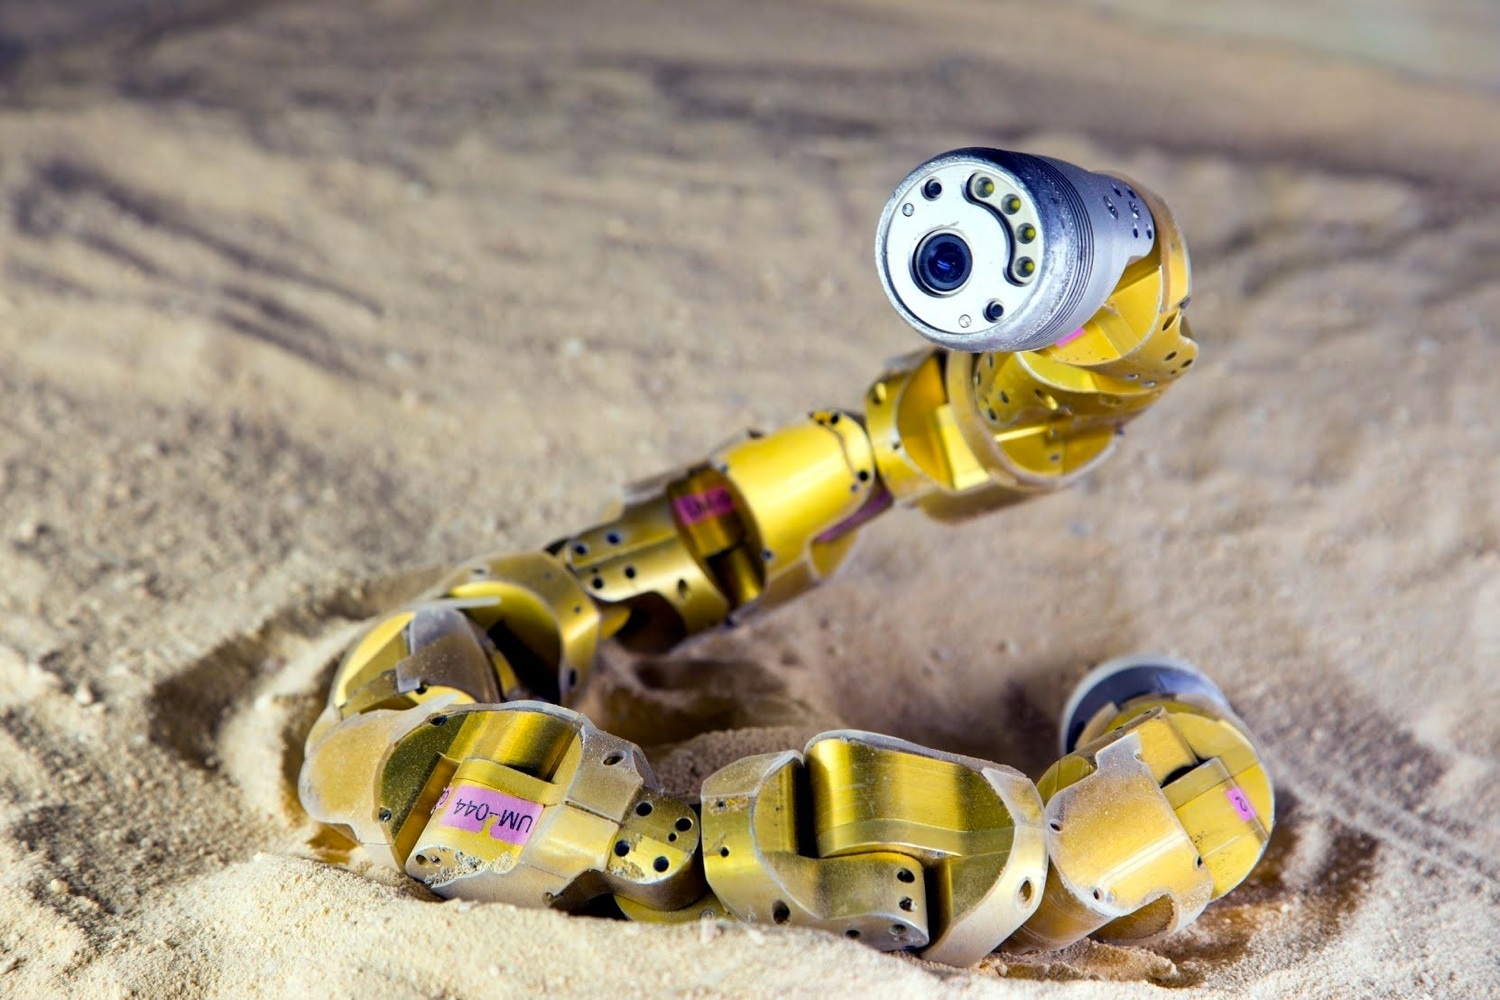 Creepy New Robot Snake Could Actually Save Lives